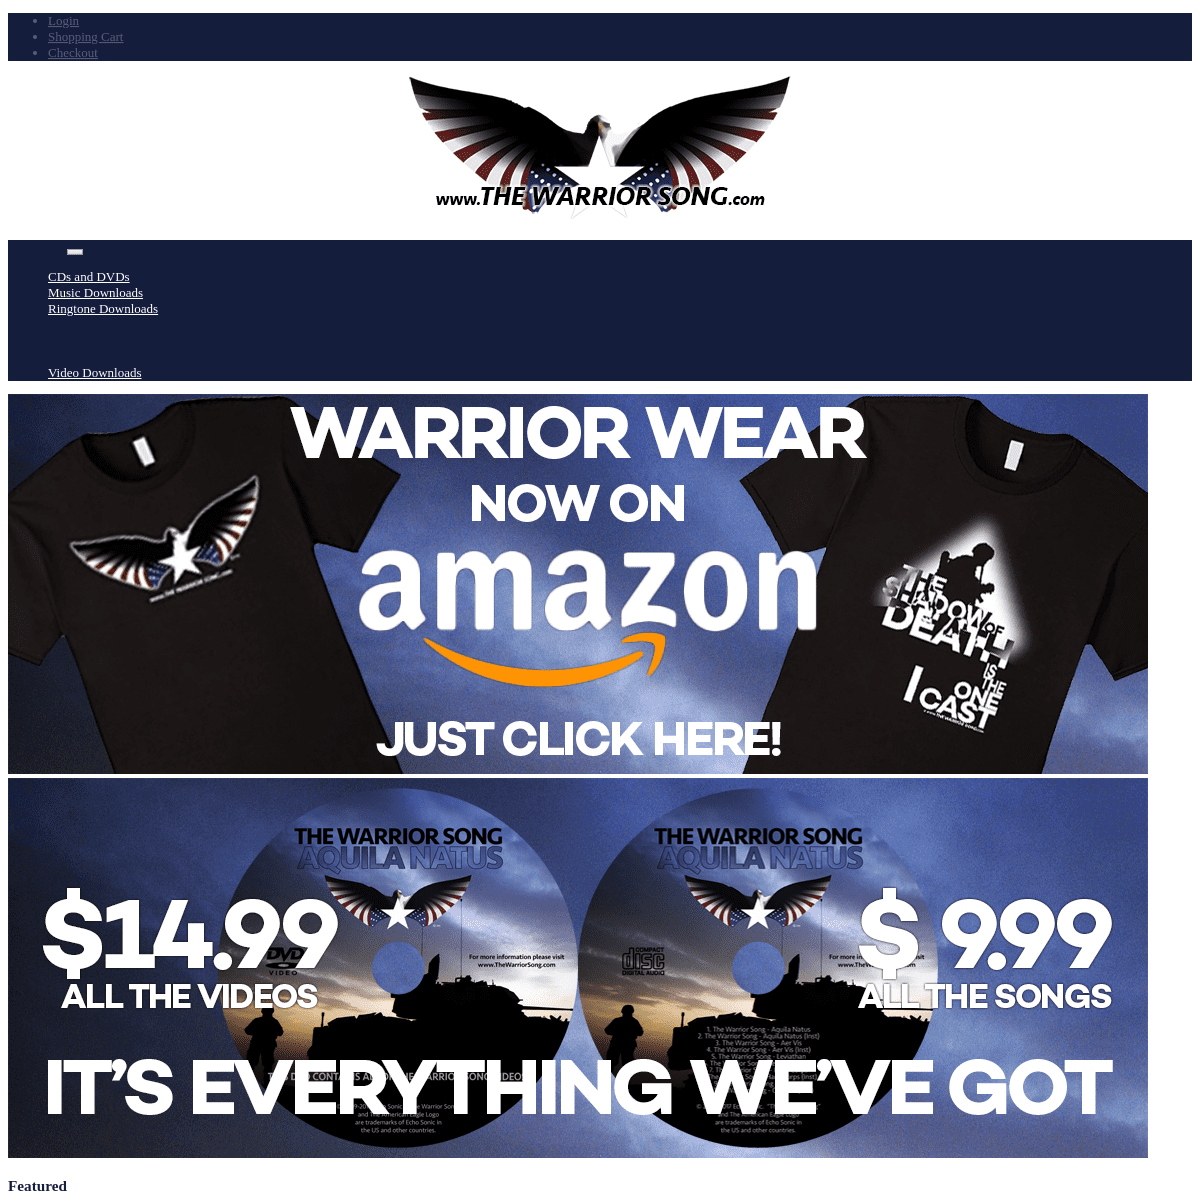 The Warrior Song Web Store